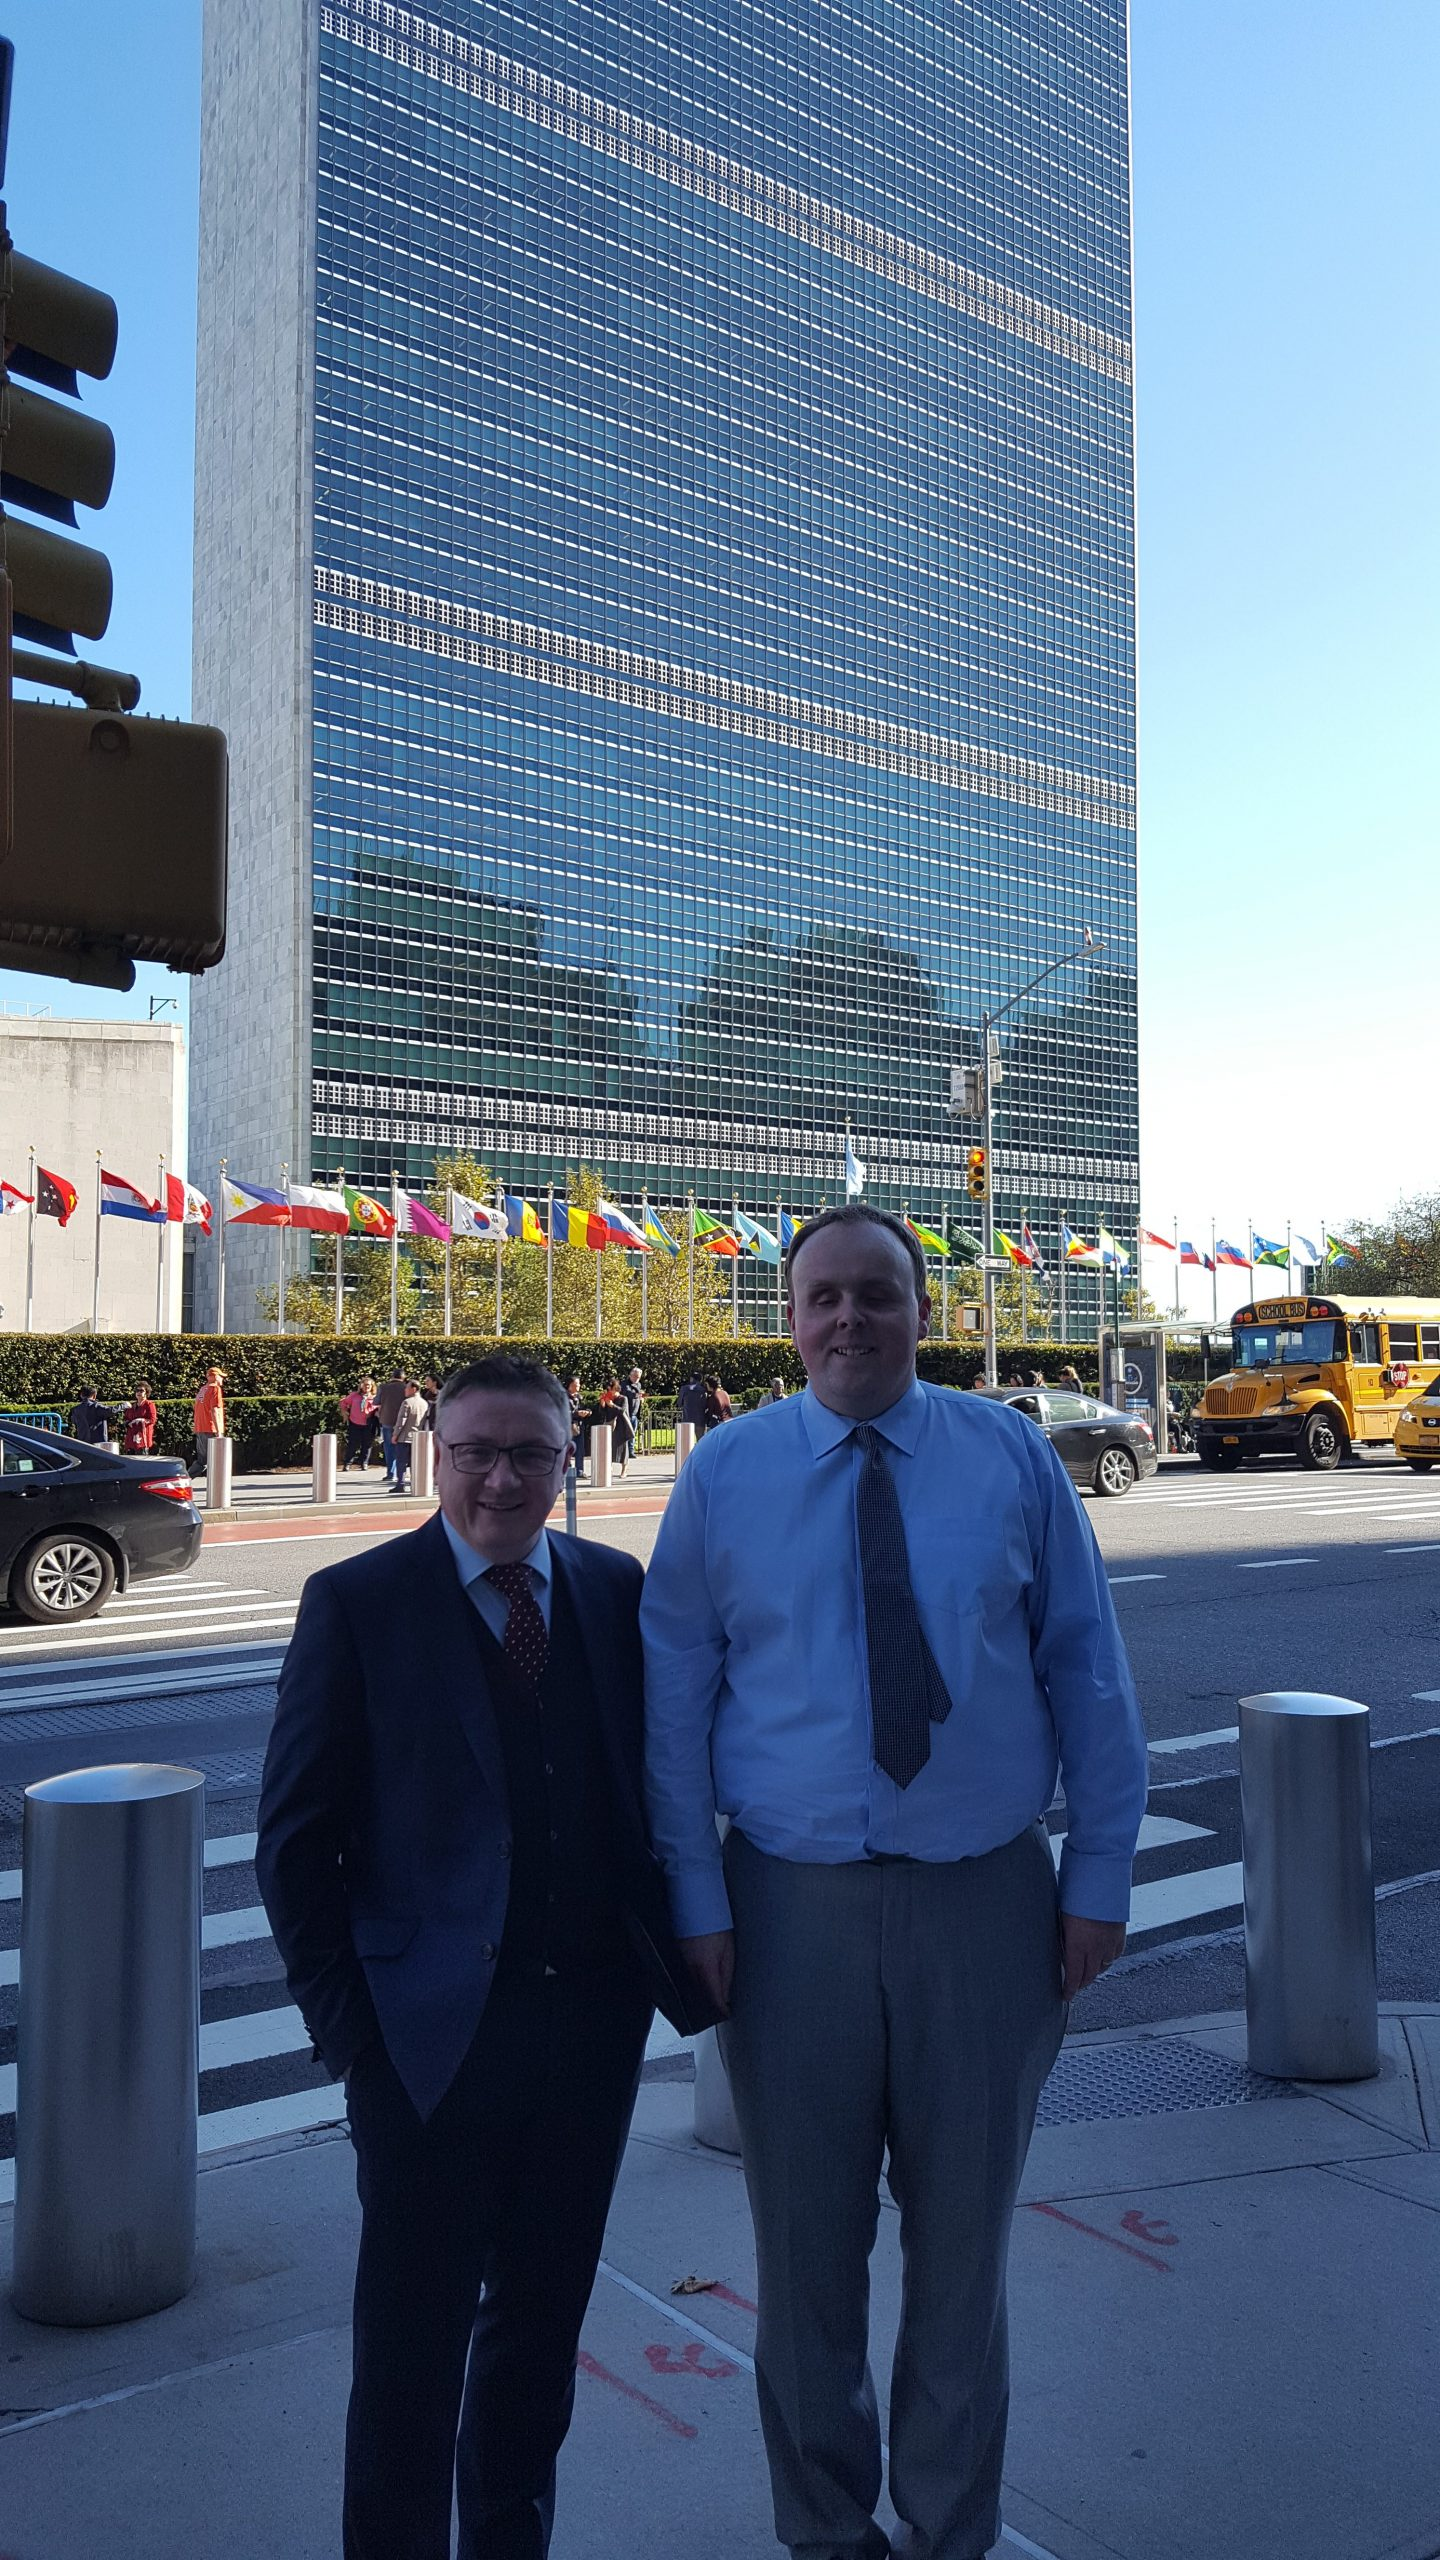 Chris White and Kevin Kelly NCBI at UN building